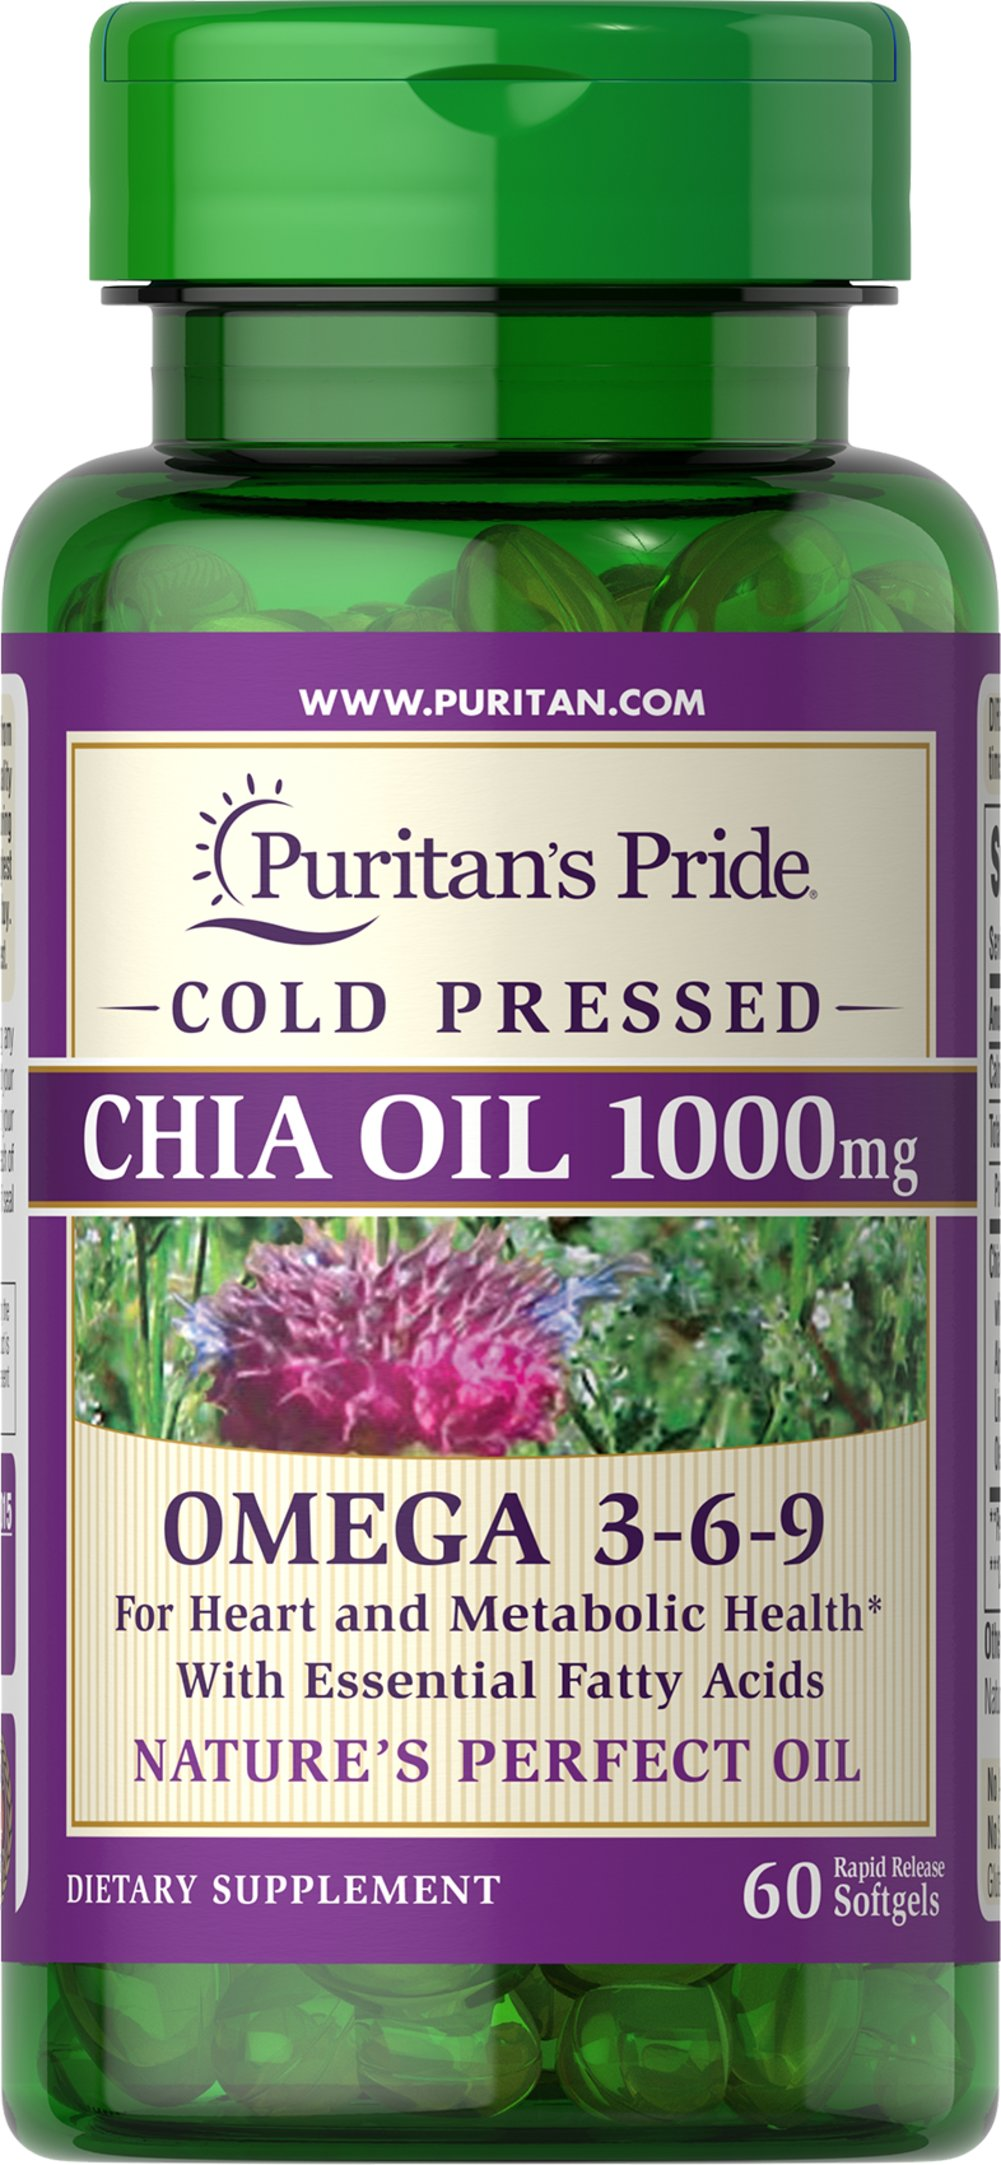 Omega 3-6-9 Chia Seed Oil 1000 mg  60 Rapid Release Softgels 1000 mg $22.99